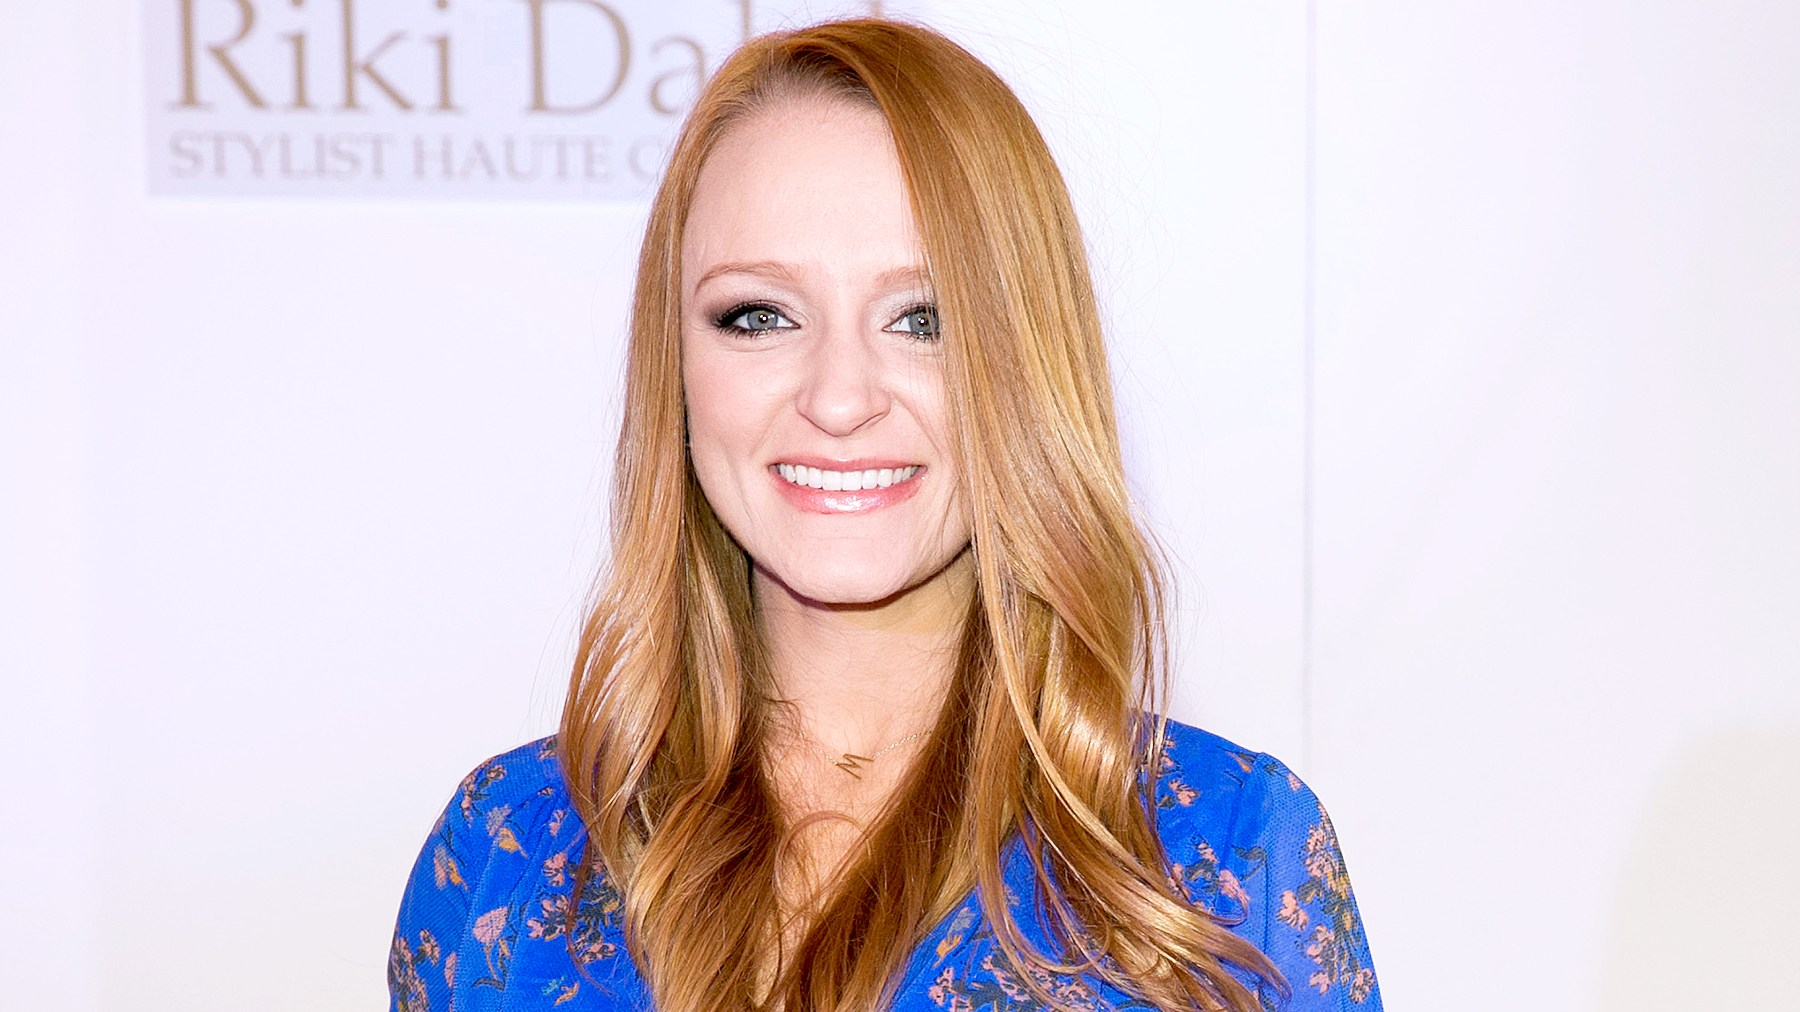 Maci Bookout attends the Bridal Fashion Show at The Grosvenor House Hotel on March 6, 2016 in London, England.